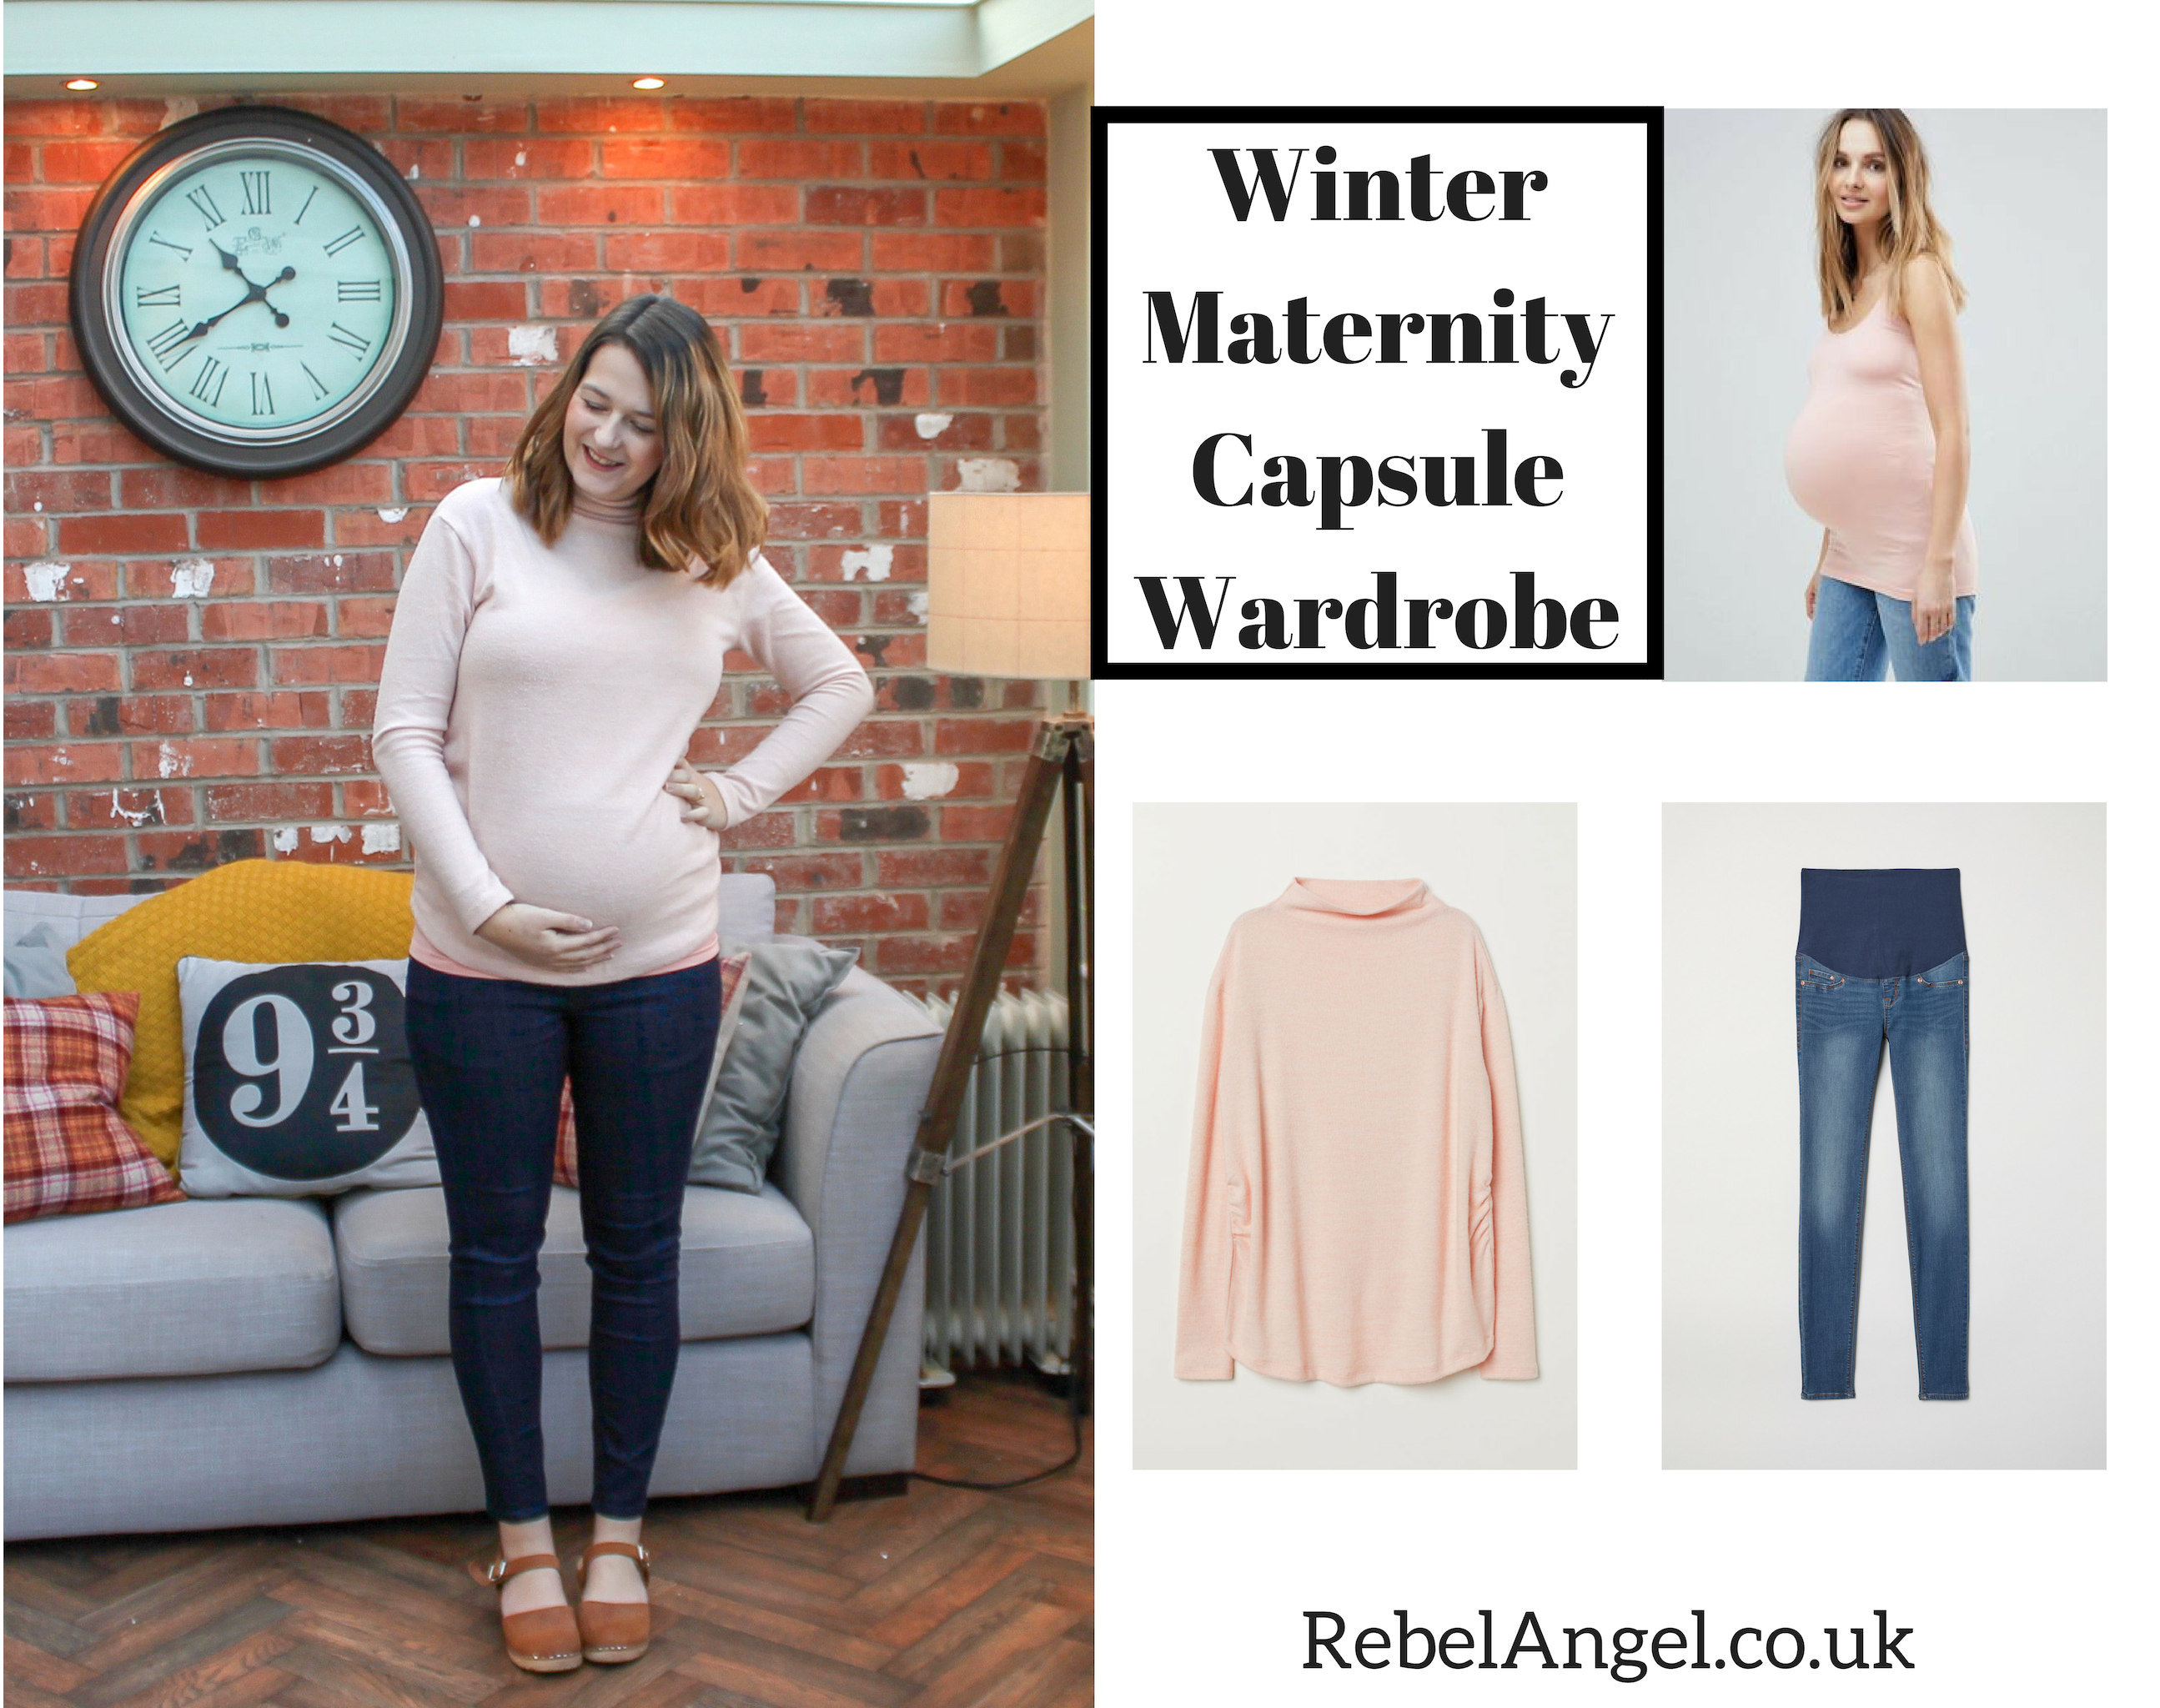 Winter Maternity Capsule Wardrobe outfit with pink H&M jumper and jeans